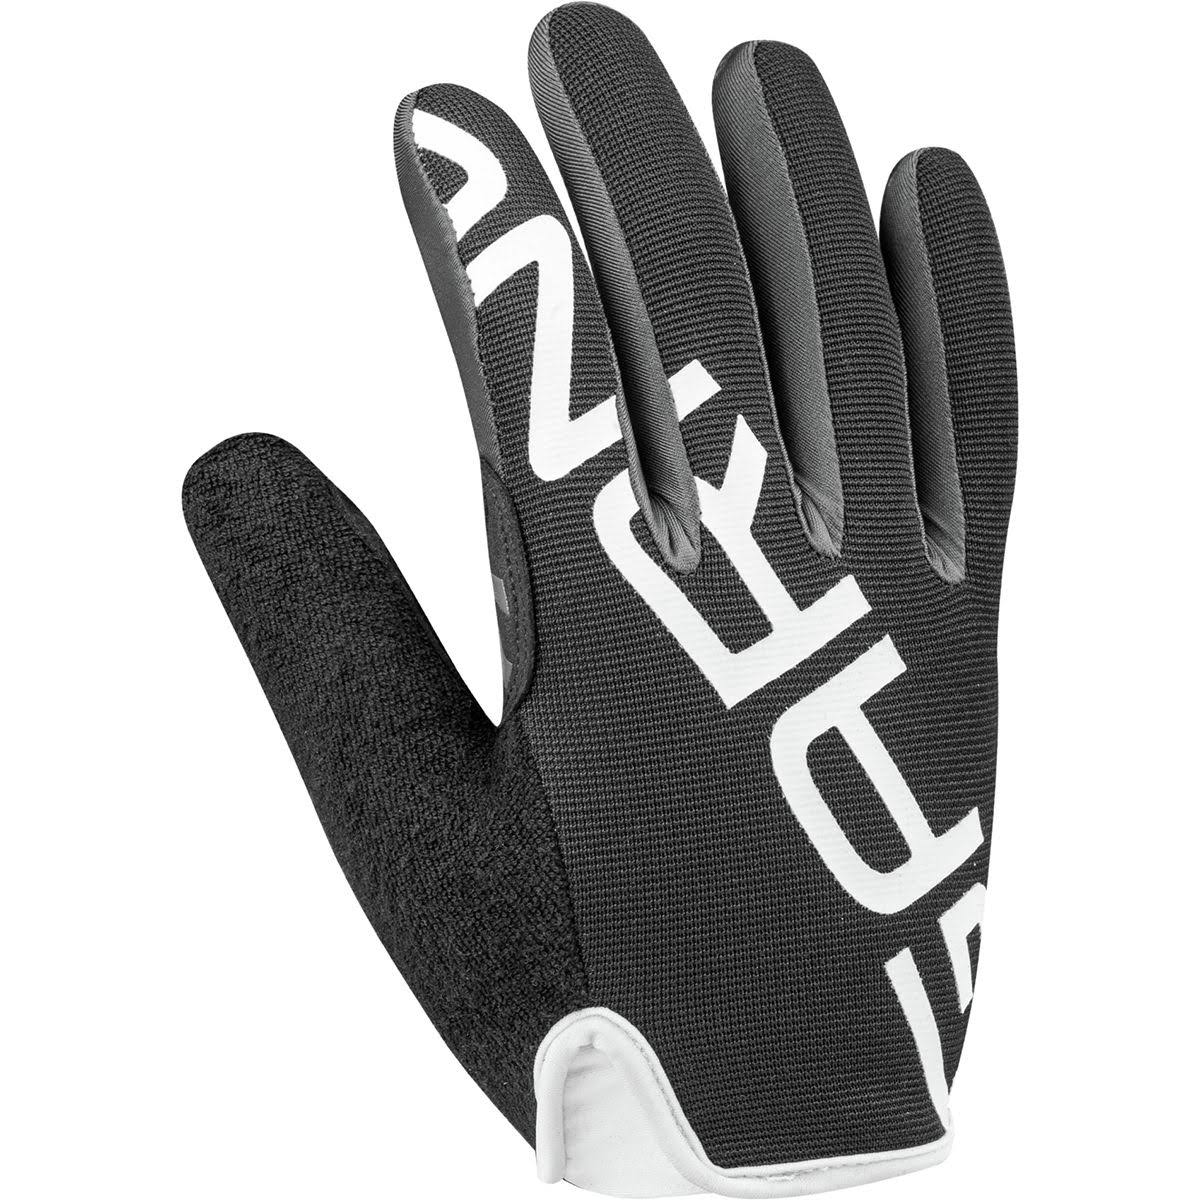 Louis Garneau Women's Ditch Cycling Gloves - Black, Medium